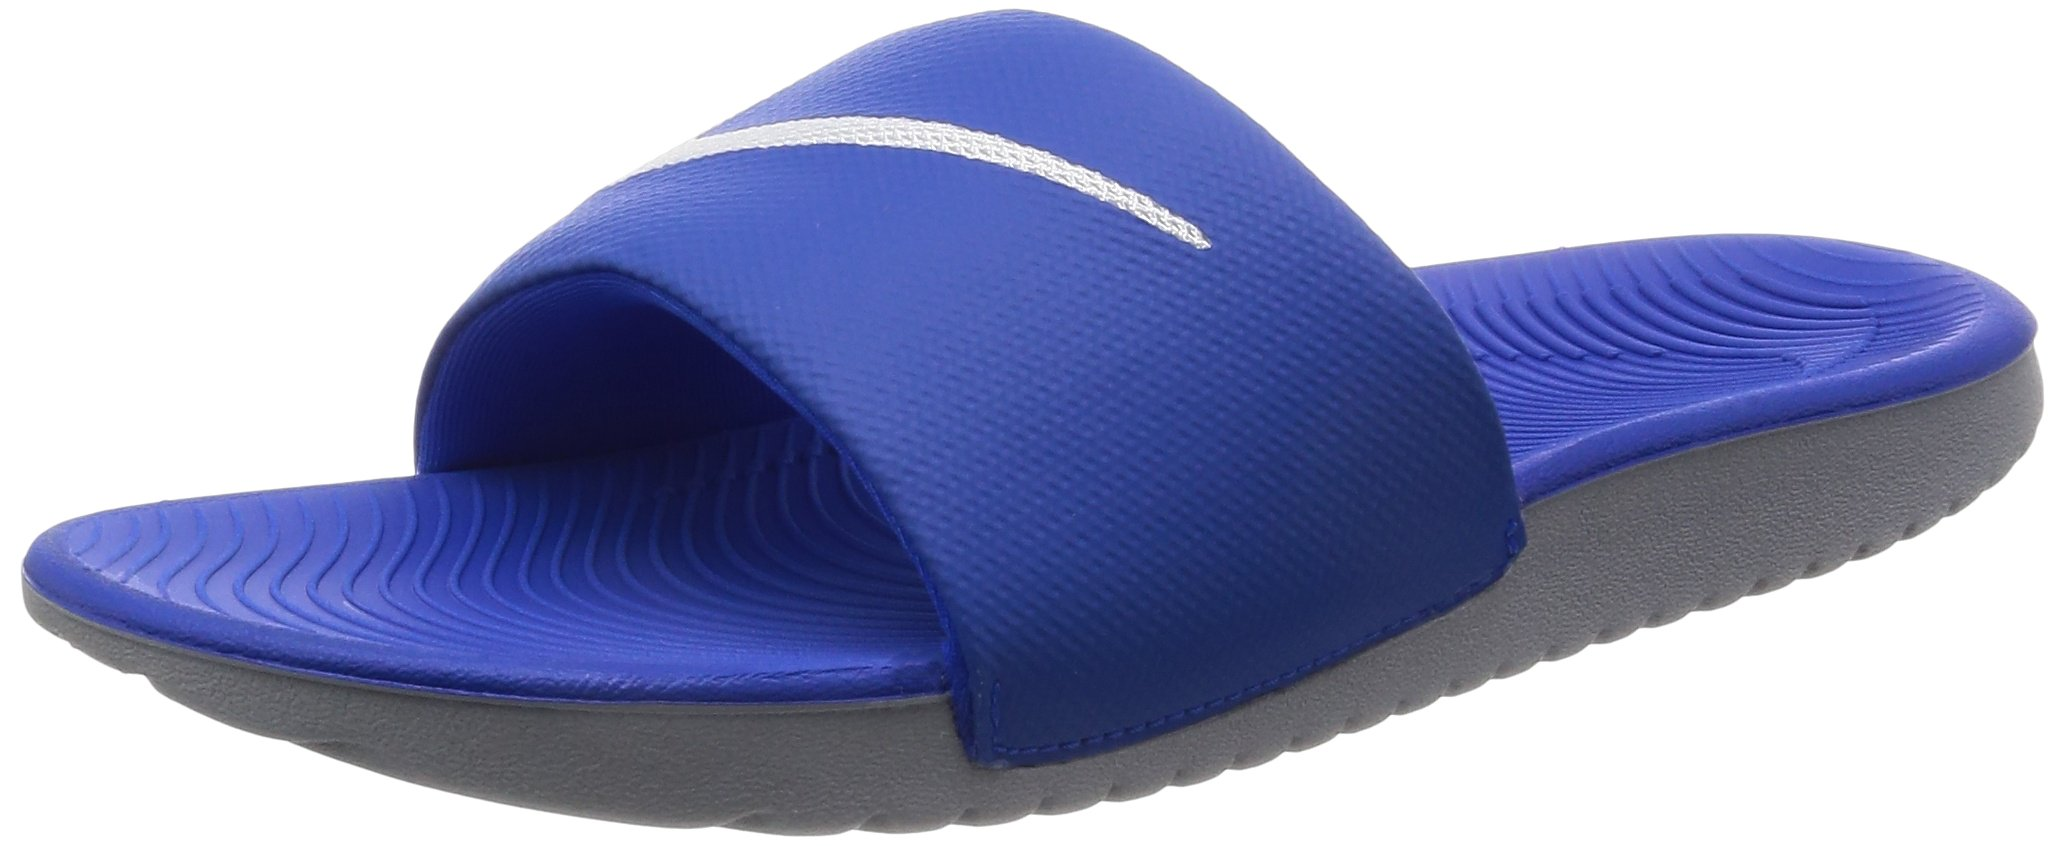 3be41a0cd896 Galleon - NIKE Kids  Kawa Slide Sandal